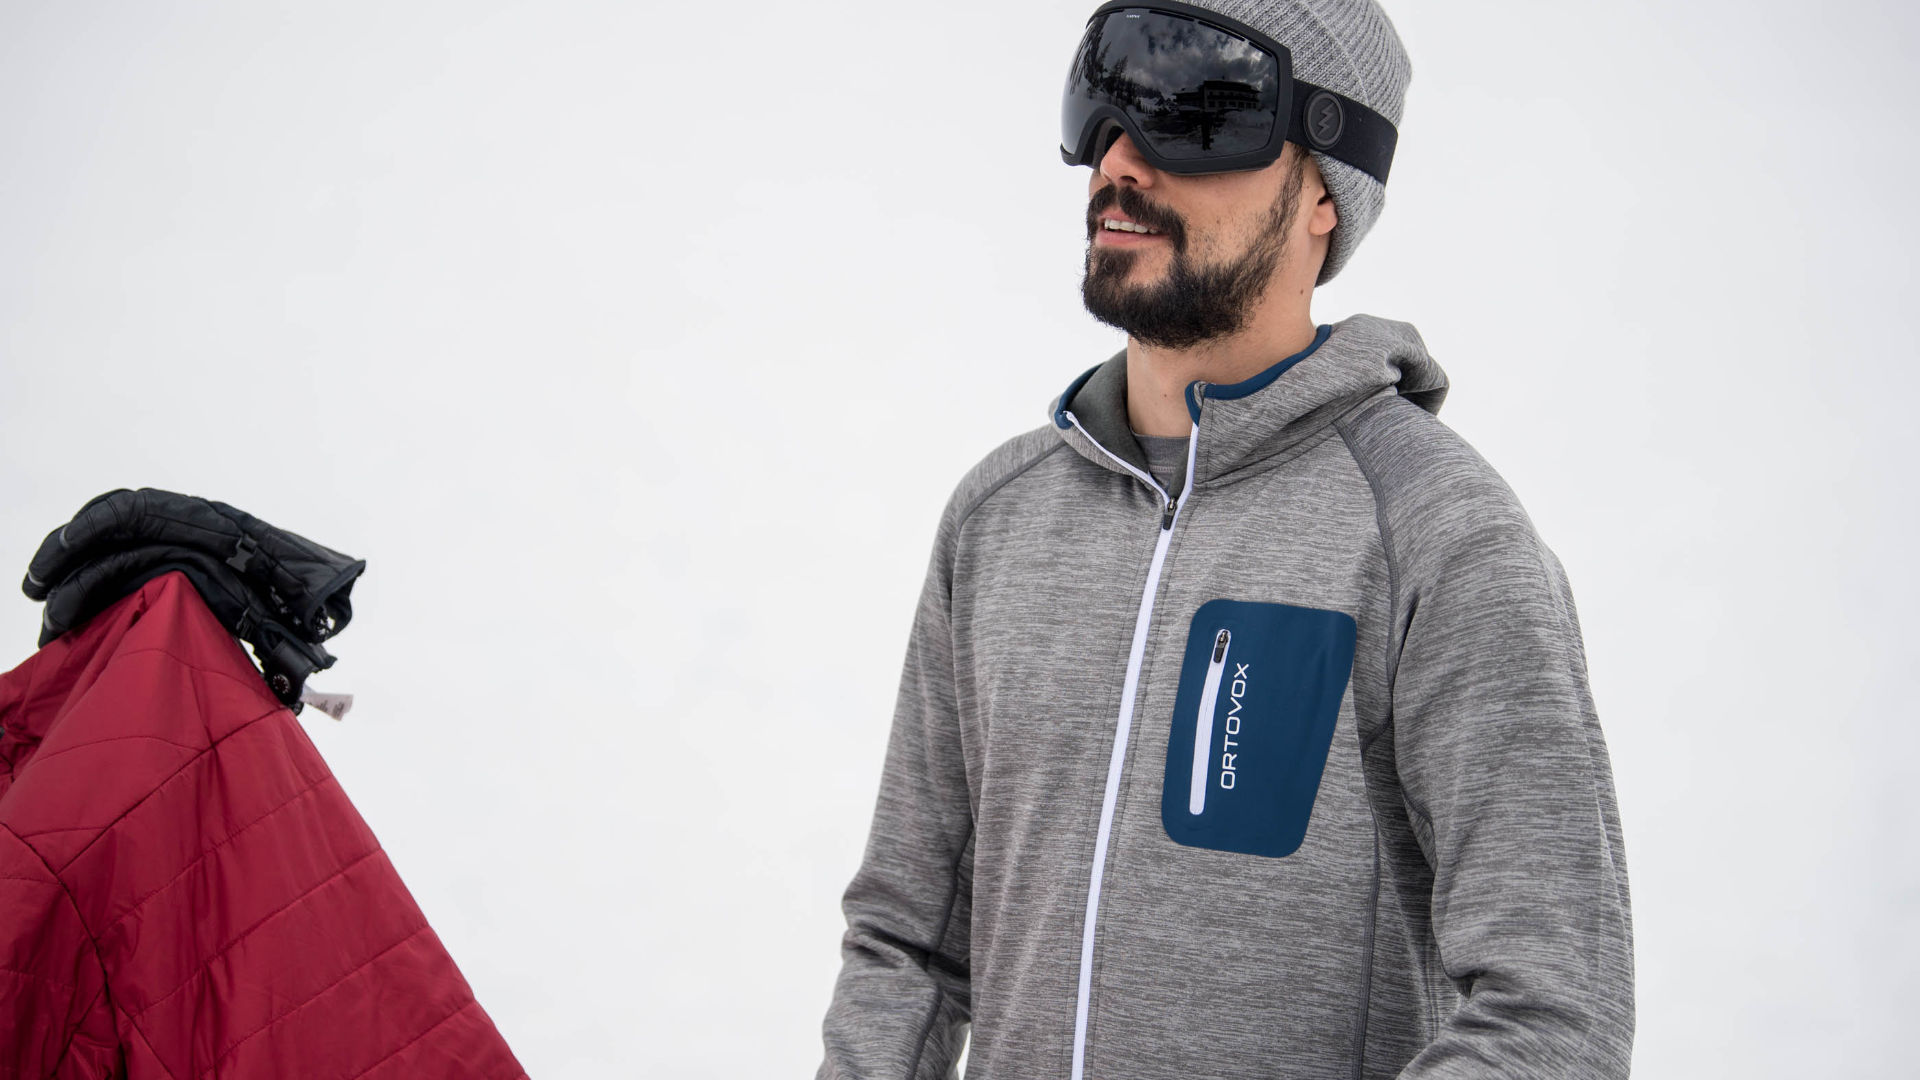 Snowboarder taking a break from riding in his fleece mid-layer from Ortovox